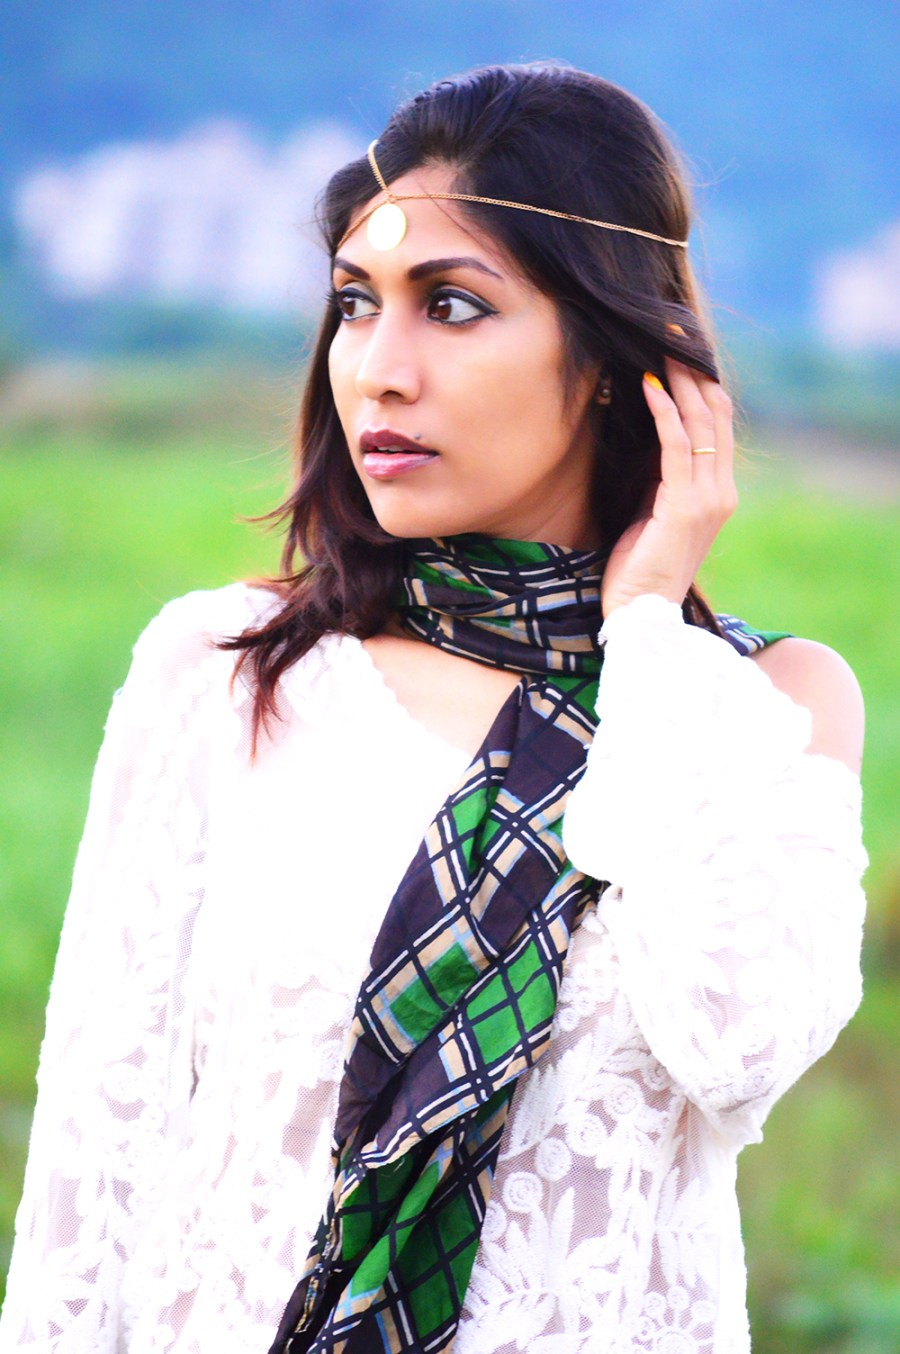 Fashion, Style, Street Style, Fashion Blogger, Fashion Photography, Indian Blogger, Lace Top, Green Trousers, Silk Scarf, Black Bag, Summer Fashion, Style Over Coffee, Pankaj Jyoti Barua Photography, Sarmistha Goswami, Street Style Photography-7